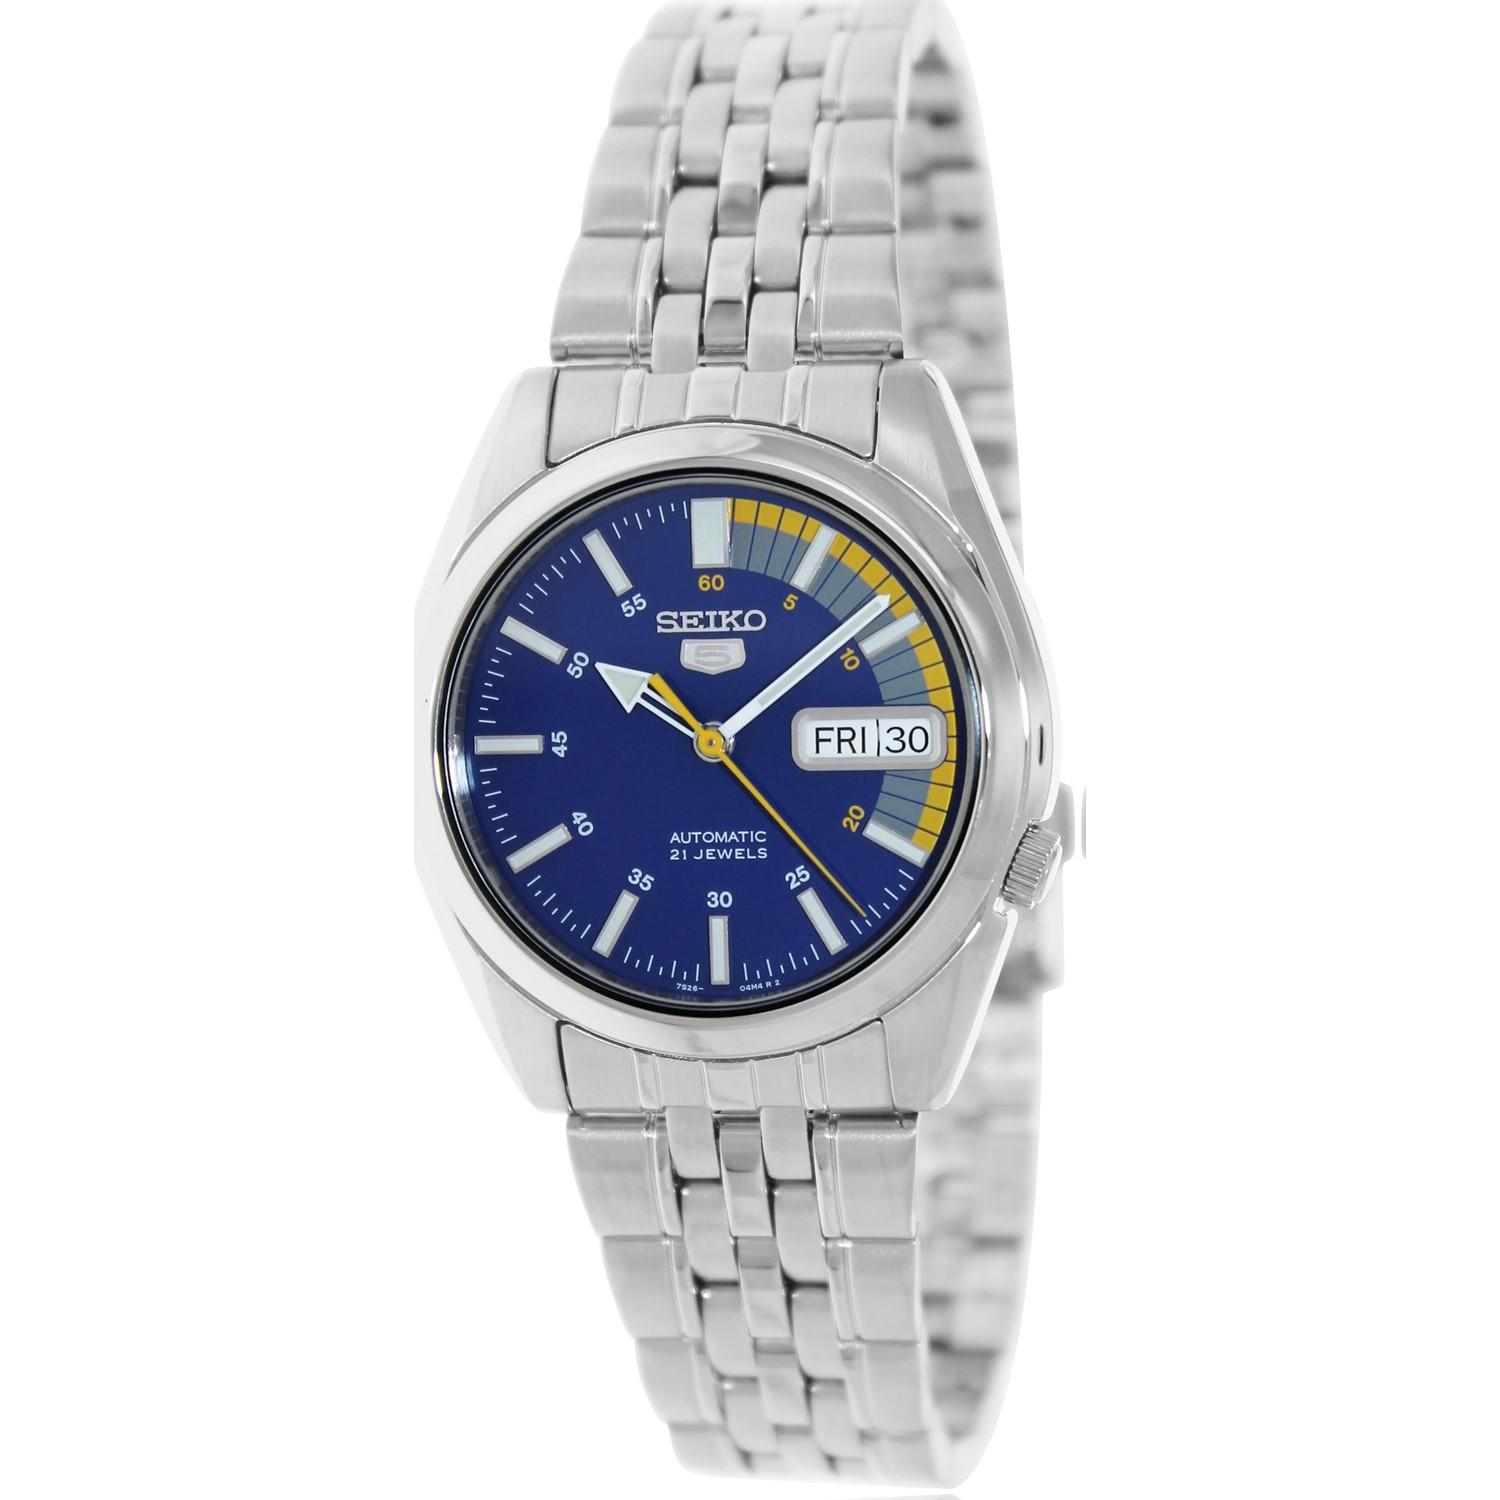 Seiko 5 Automatic Snk371k Silver Stainless Steel Watch In Fossil Jr1515 Featured